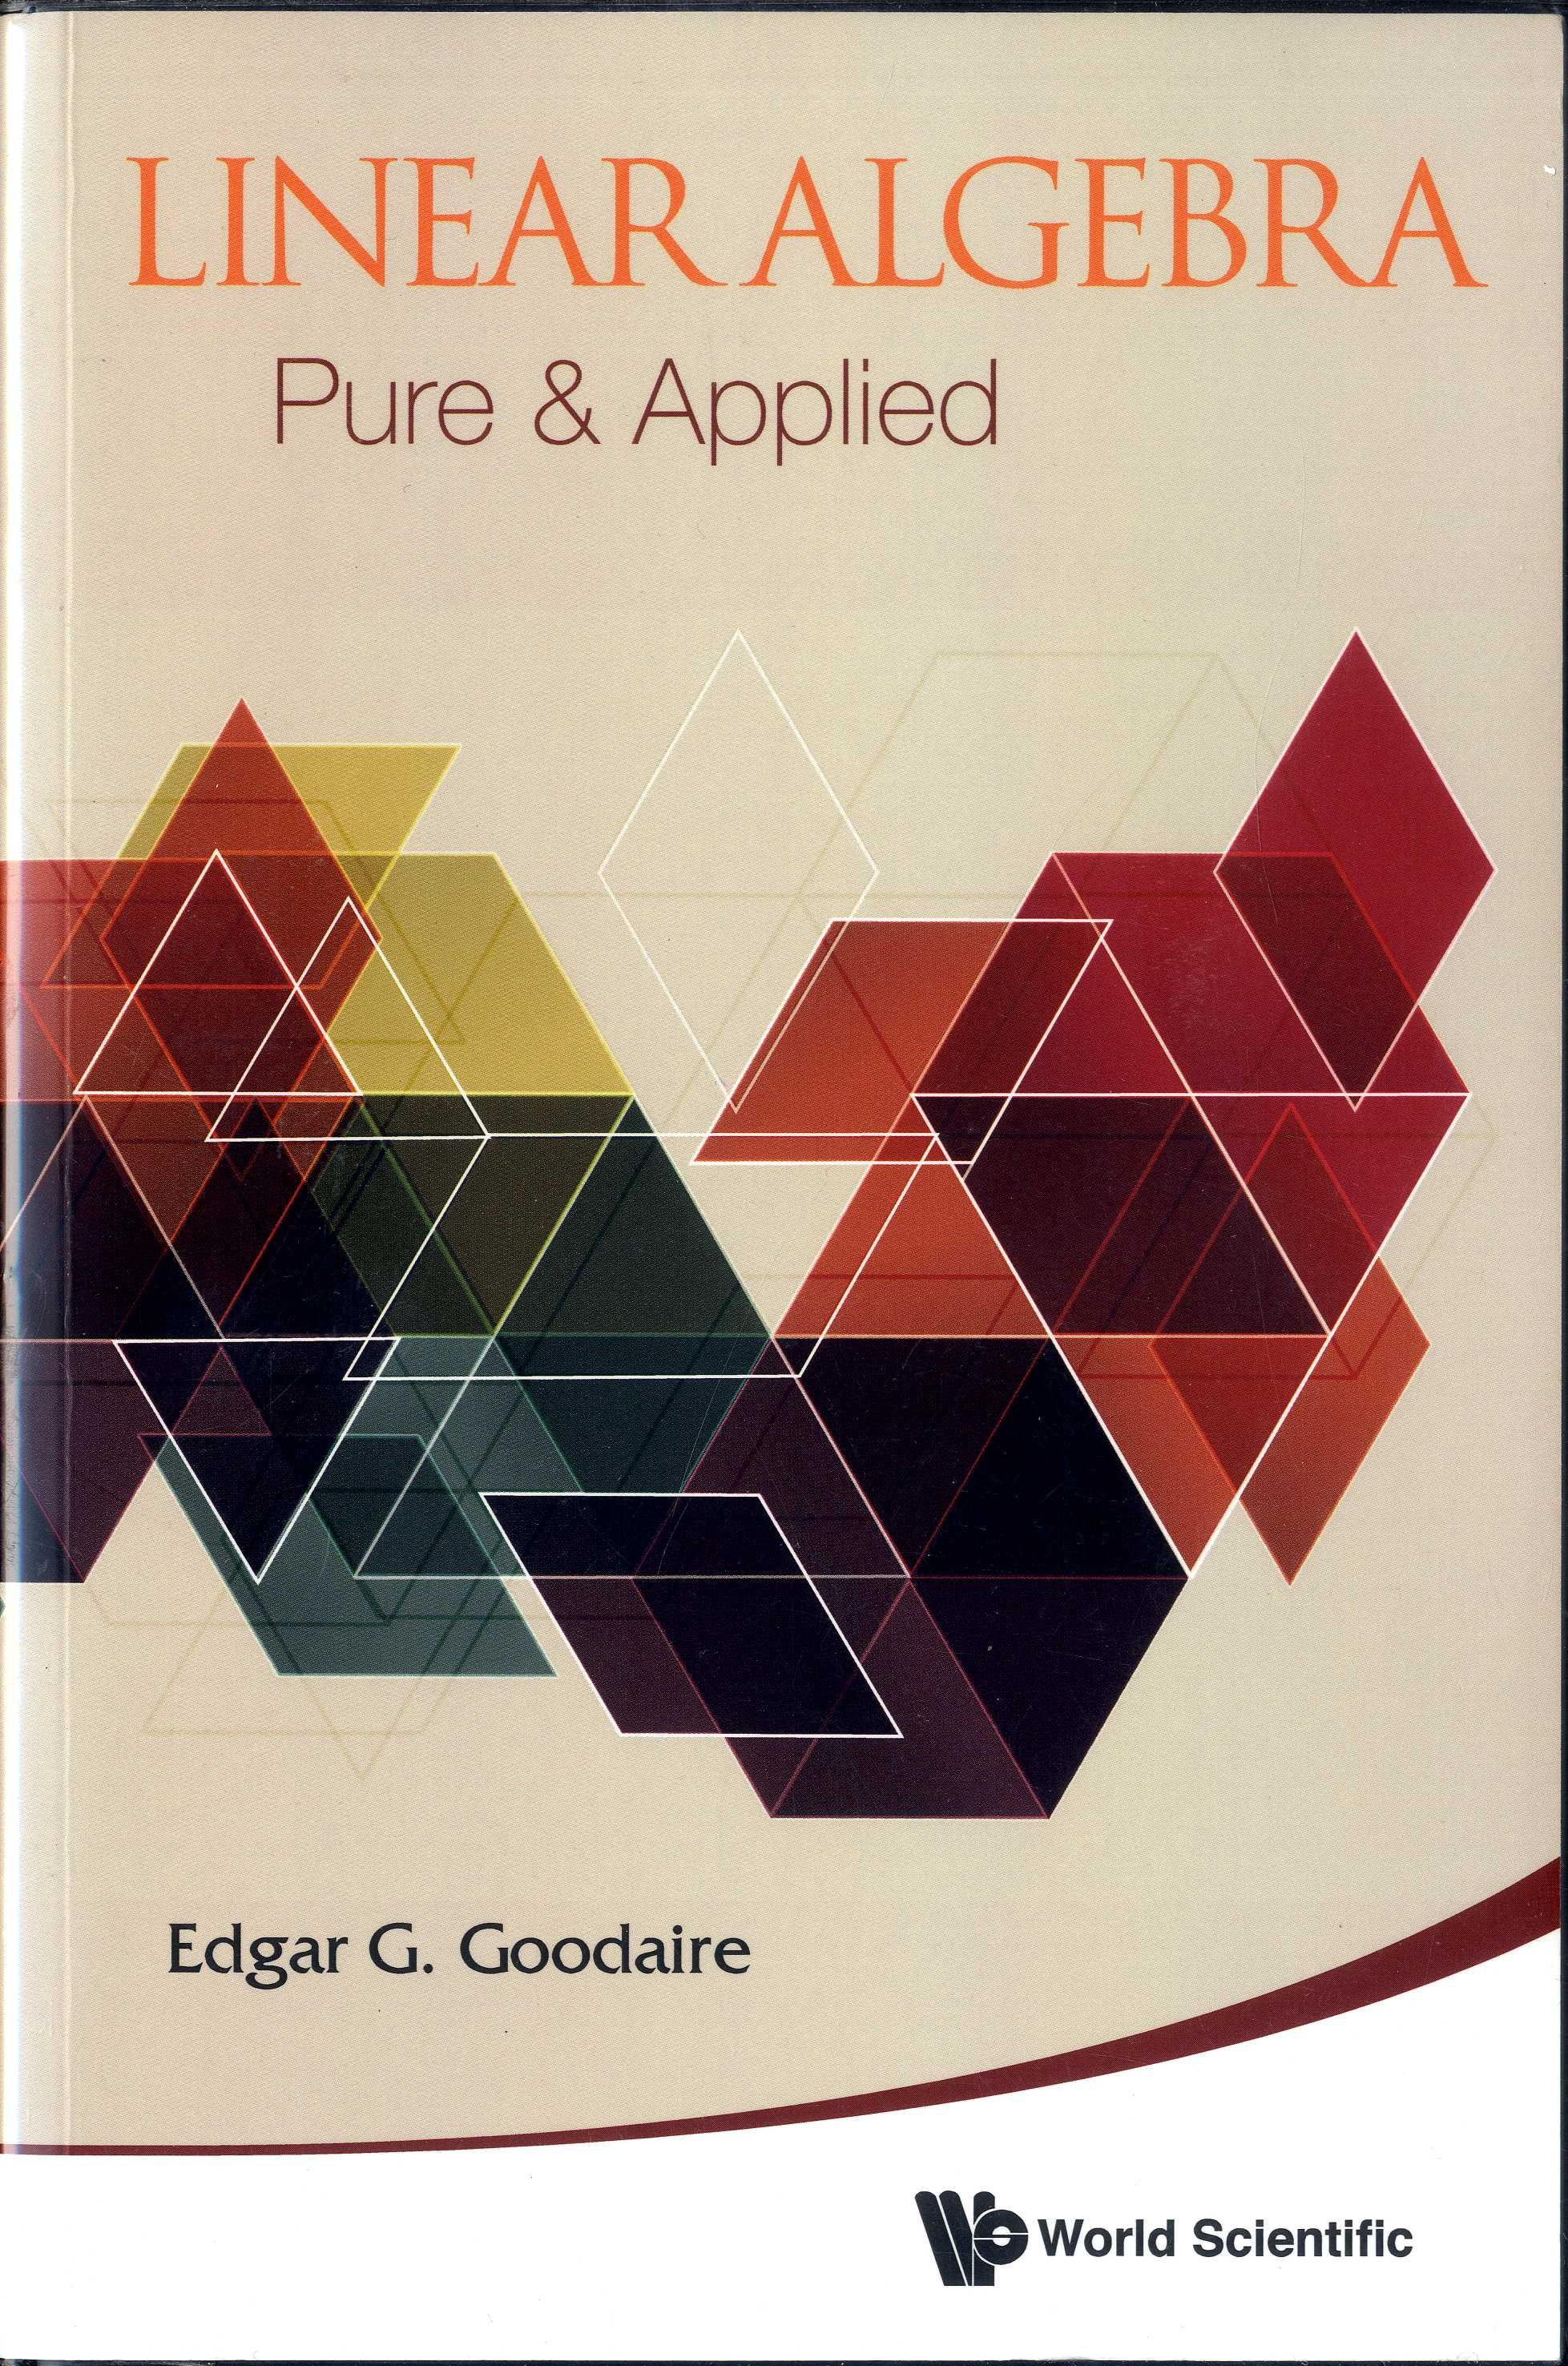 Linear algebra : pure and applied / by Edgar G. Goodaire.-- New Jersey [etc] : World Scientific, 2015.